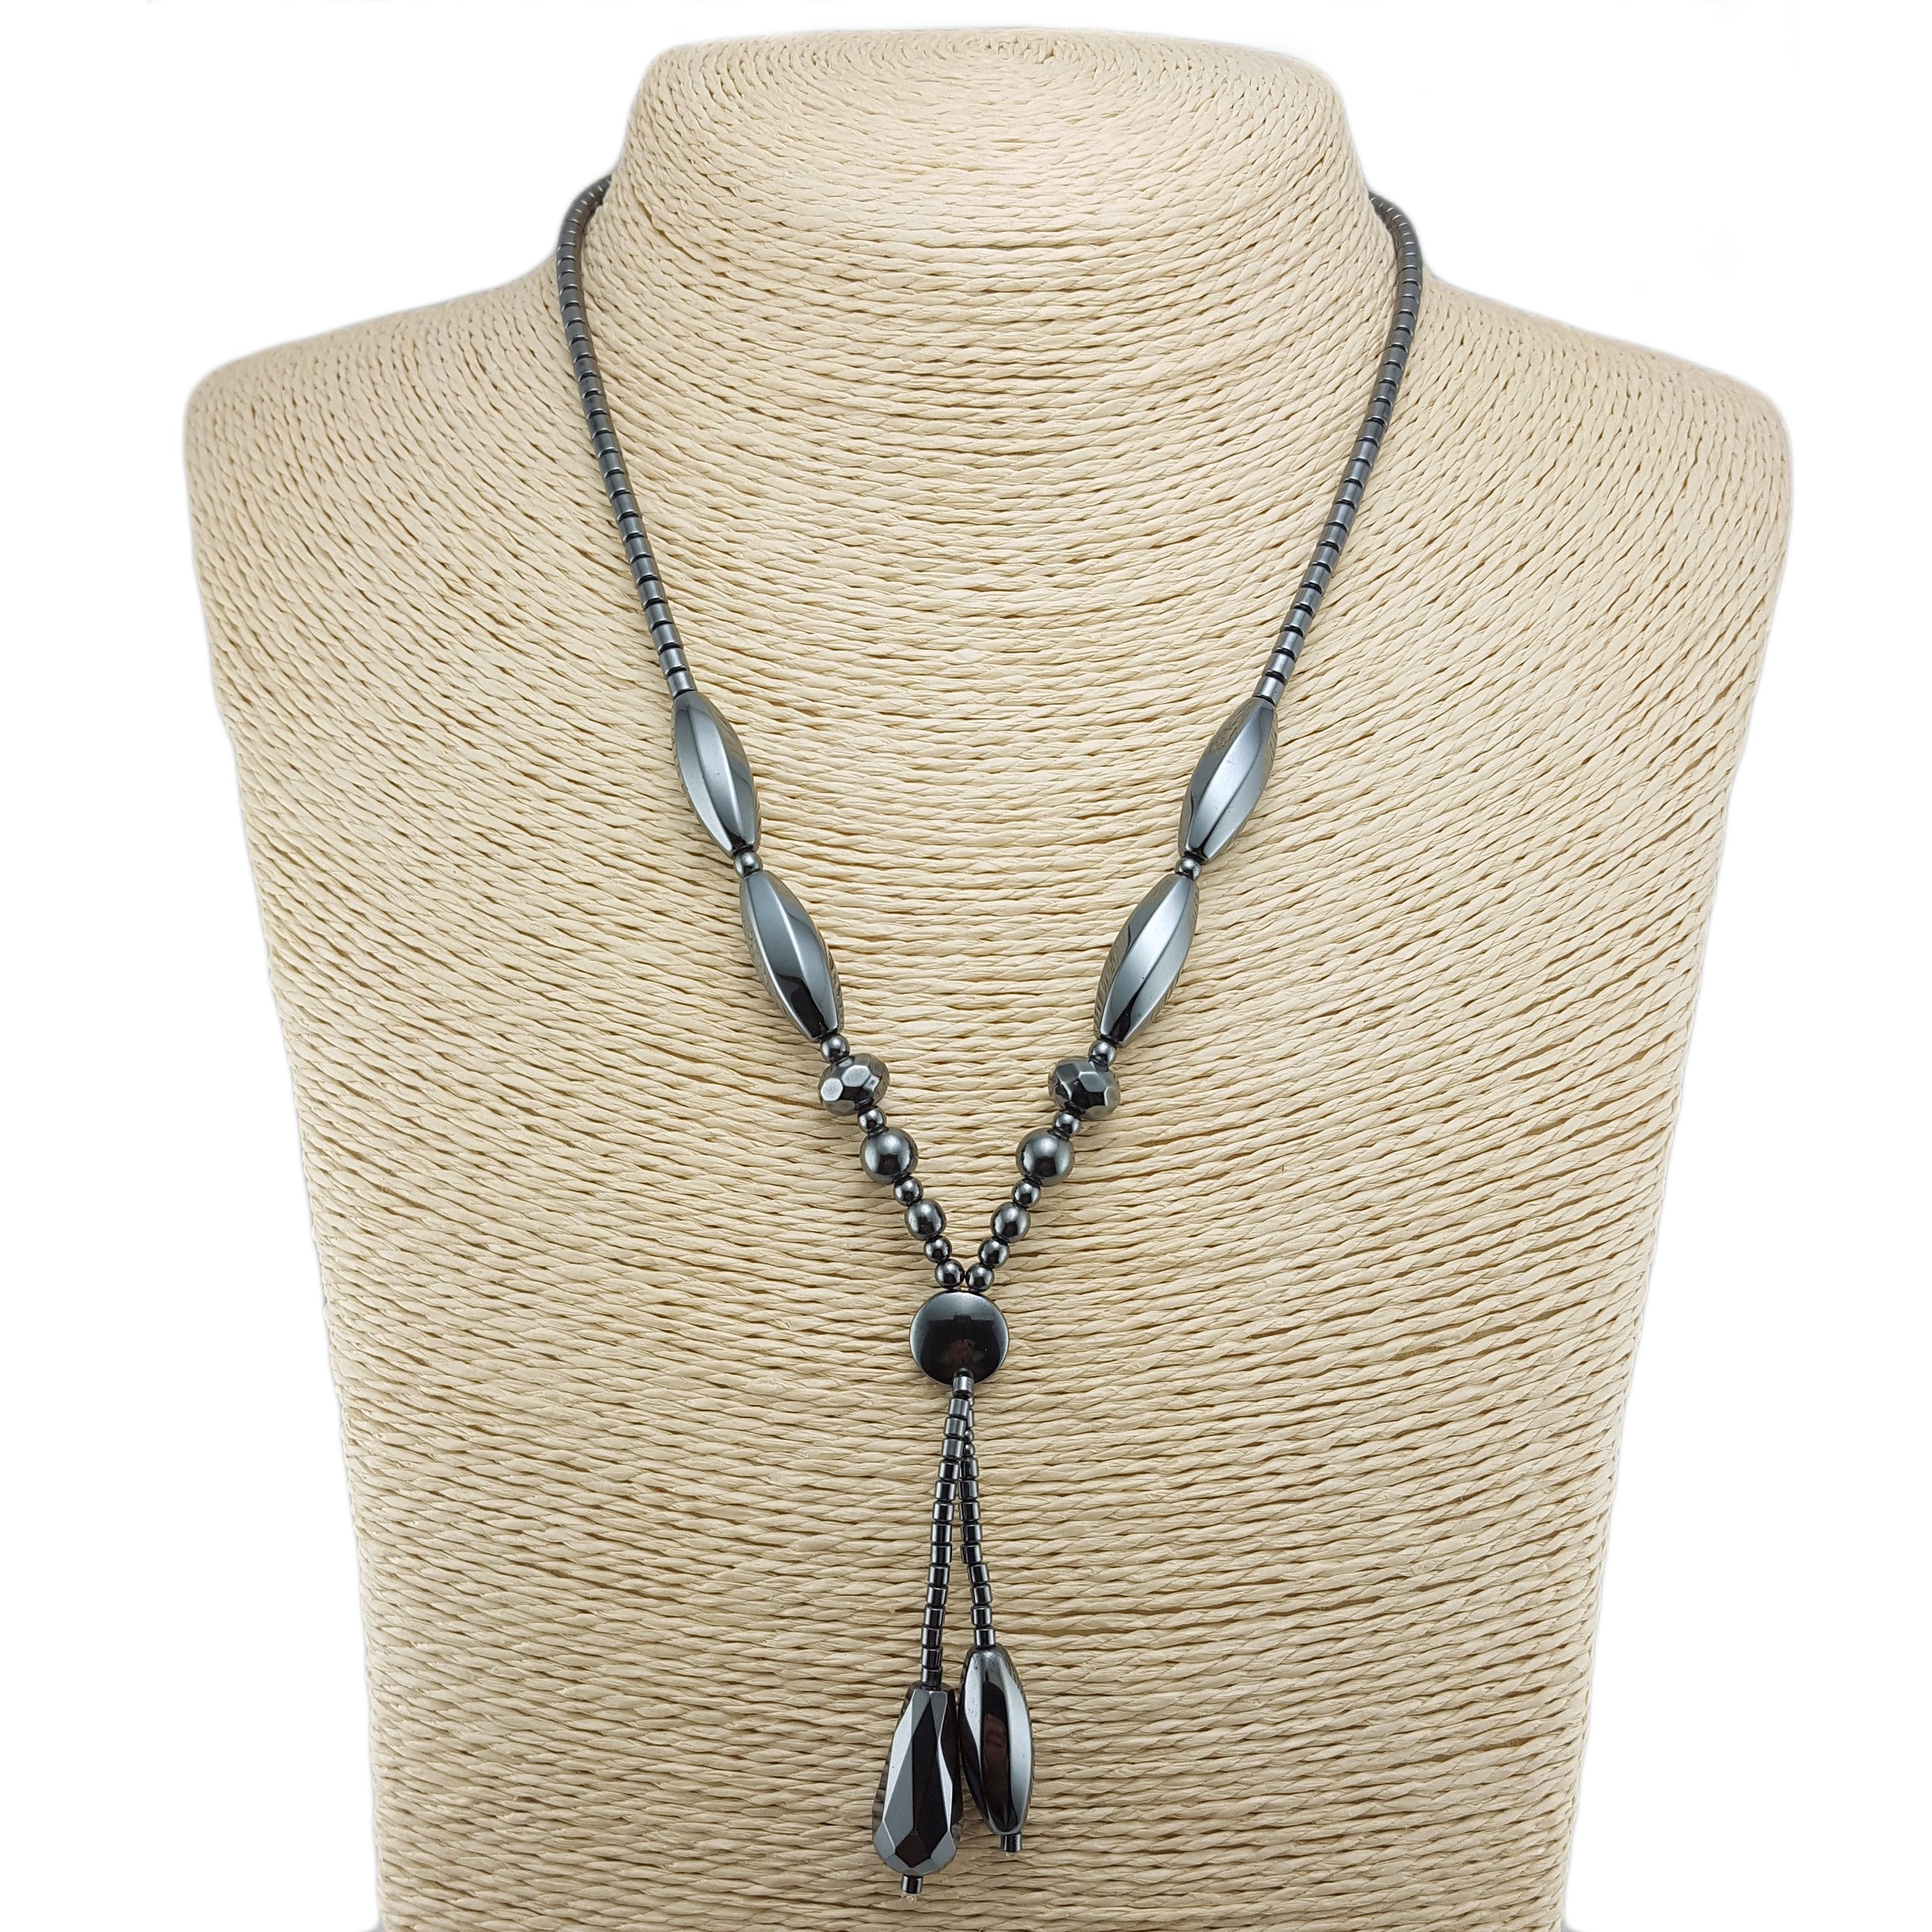 BlueRica Double Strand Drop Hematite Necklace with Design Beads